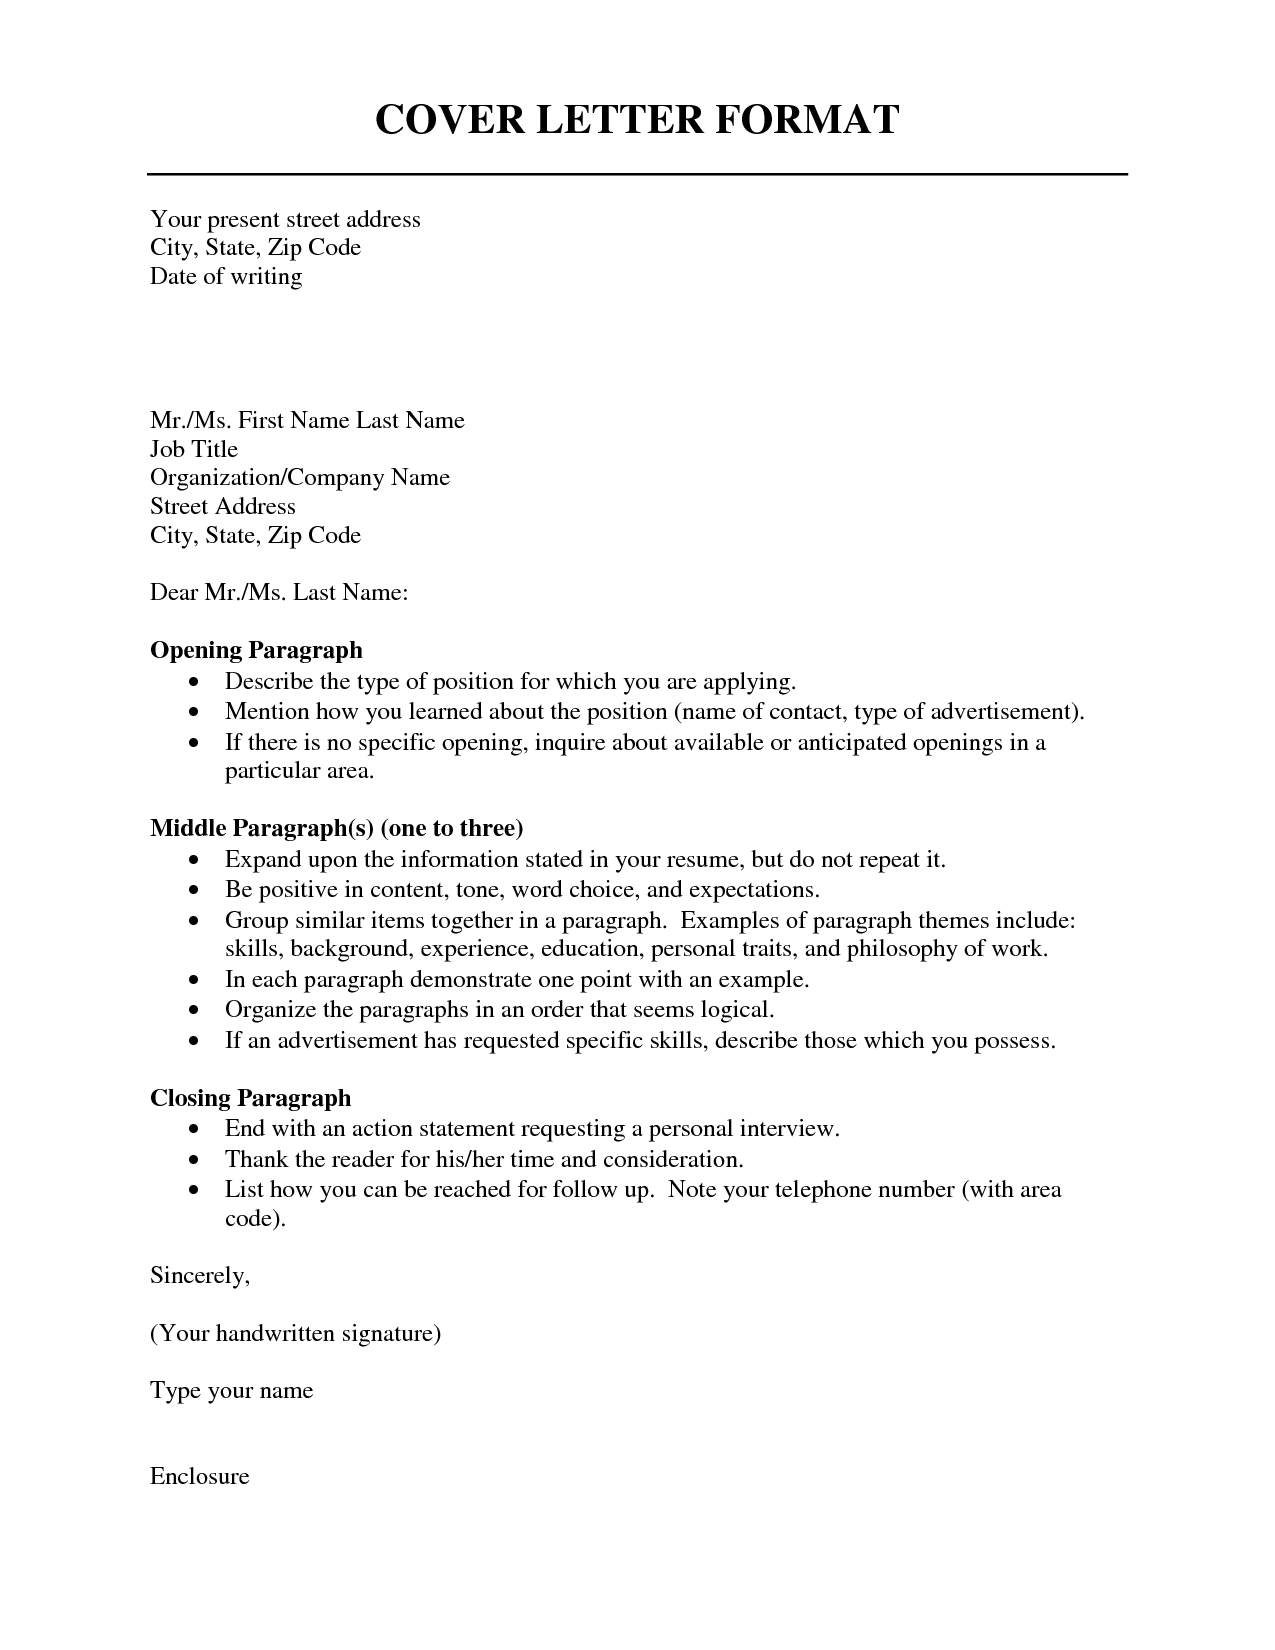 what is the format of a cover letter